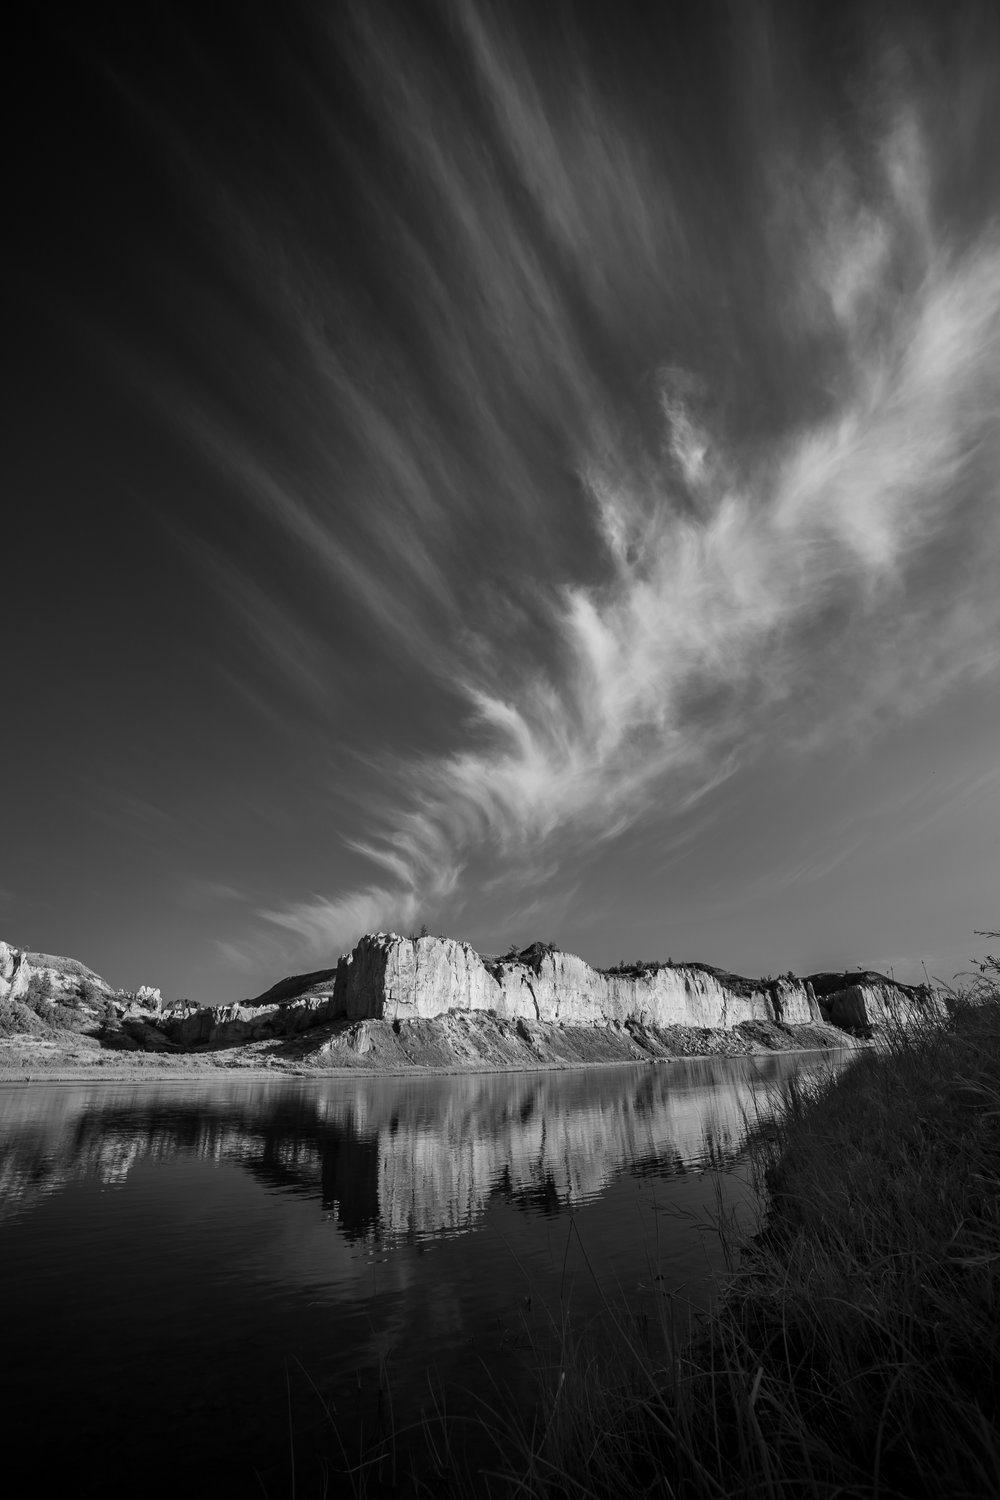 Eagle Creek in Infrared